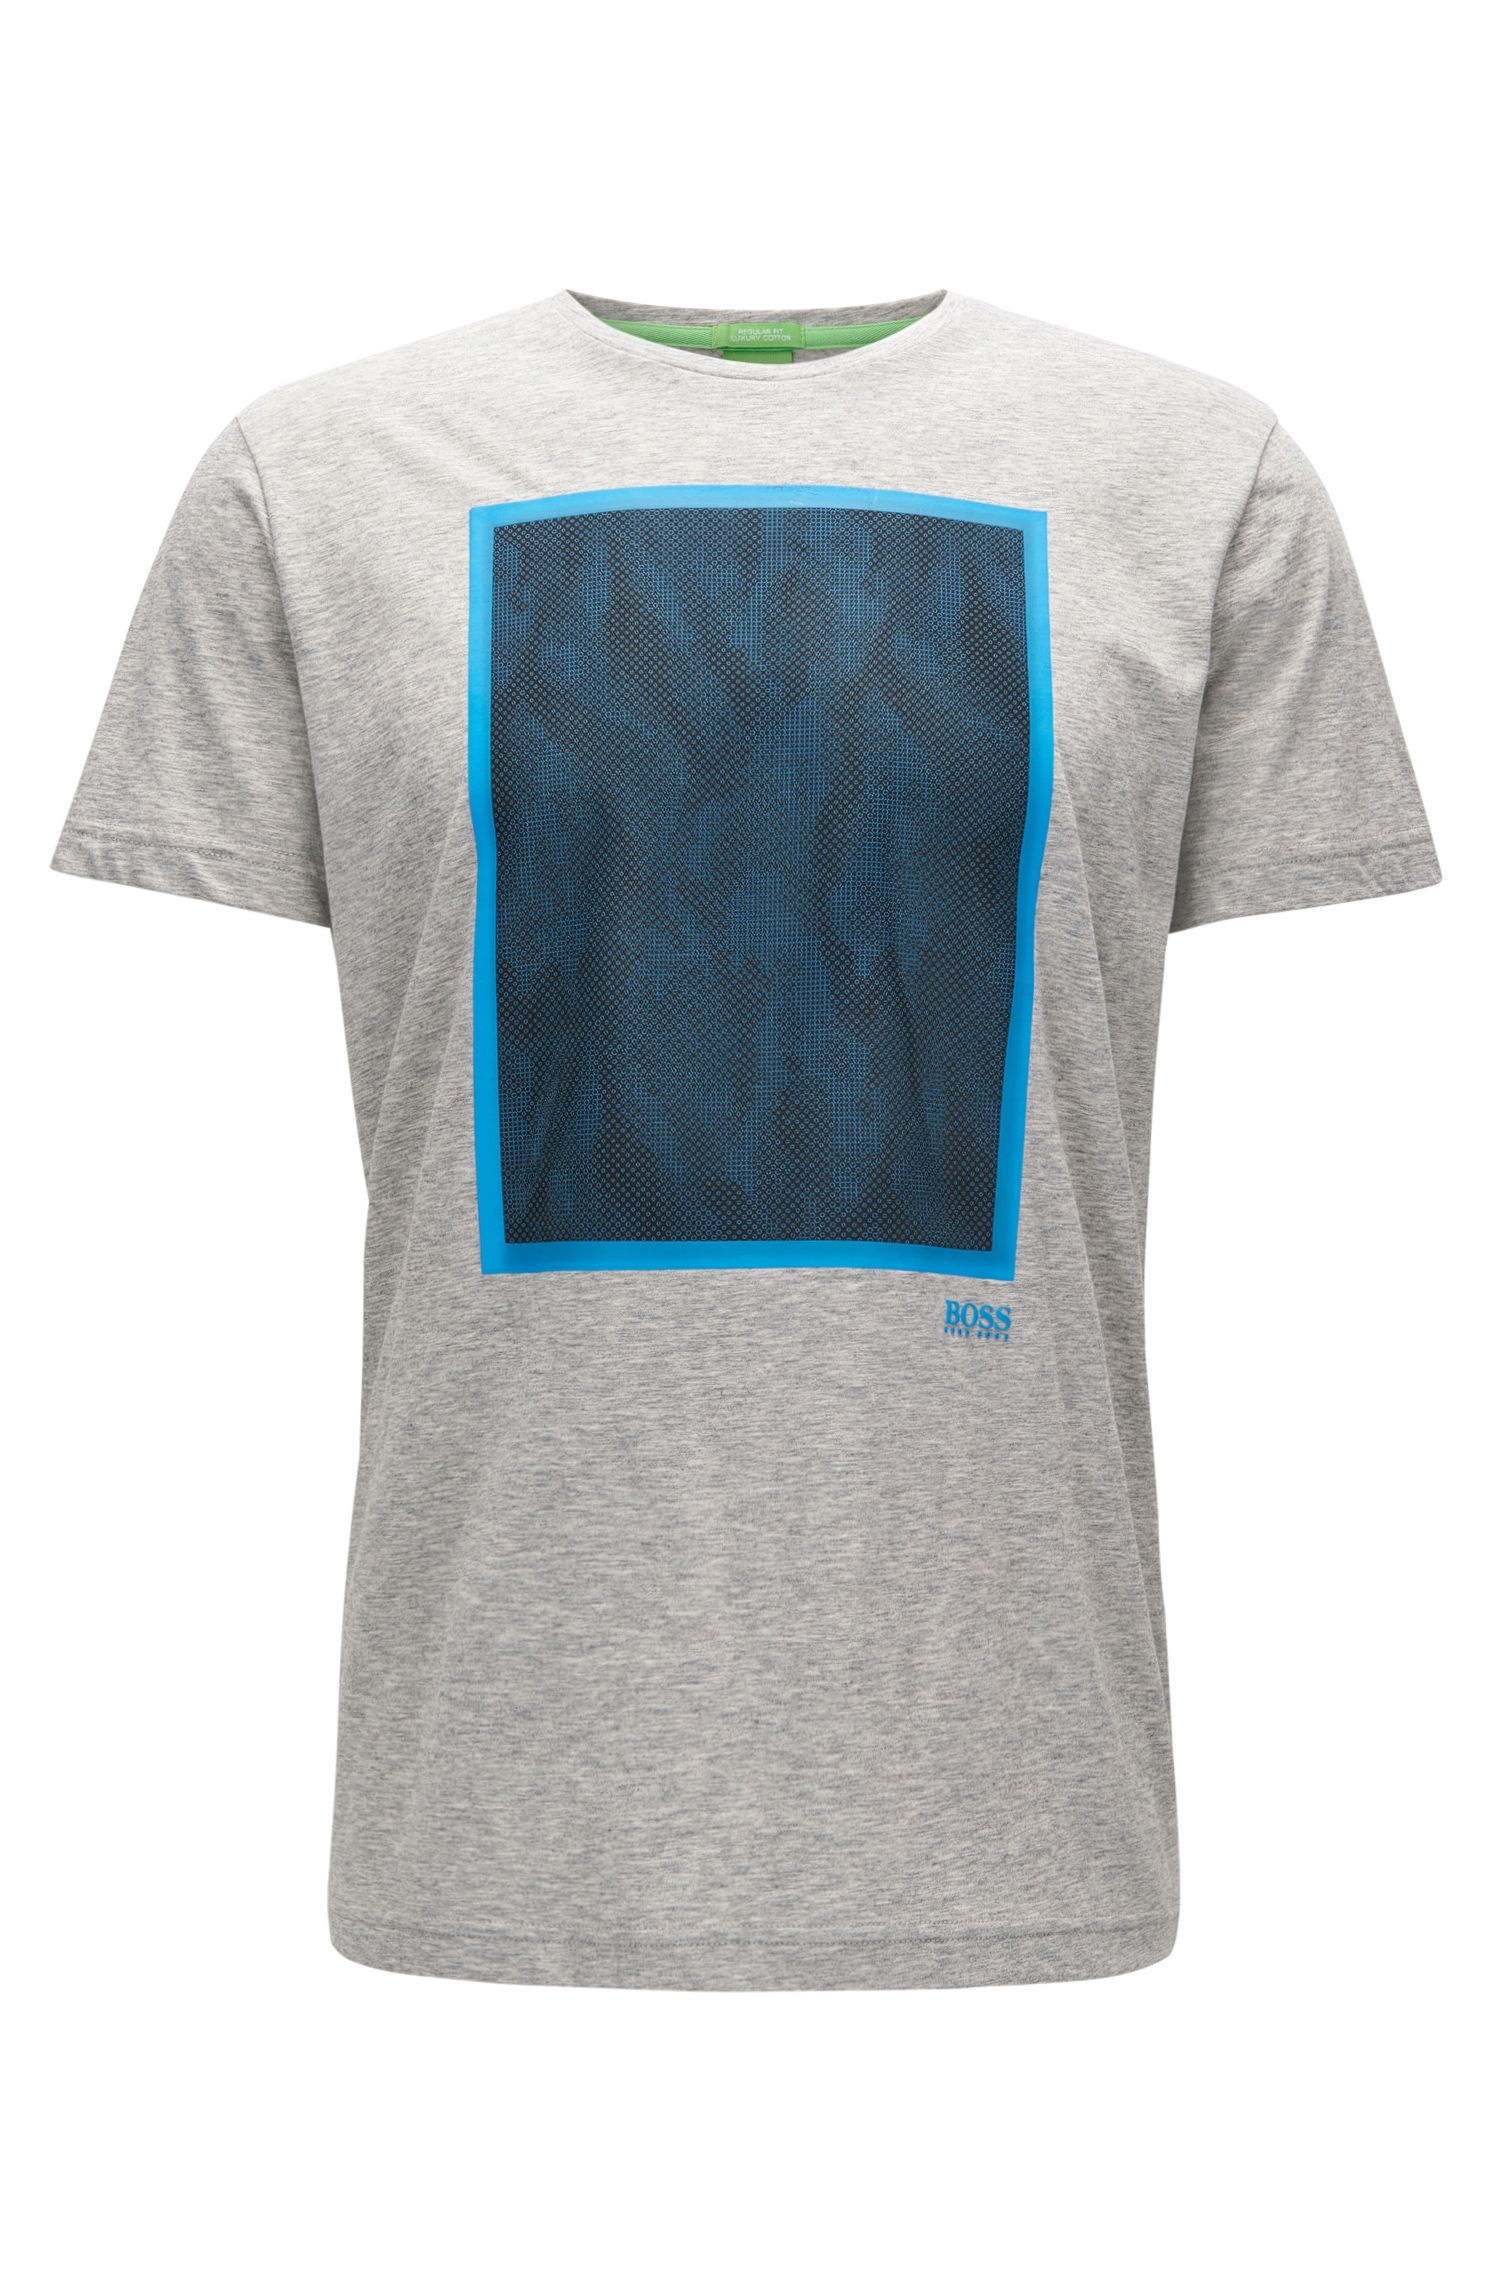 Mesh-Print Cotton Graphic T-Shirt | Tee